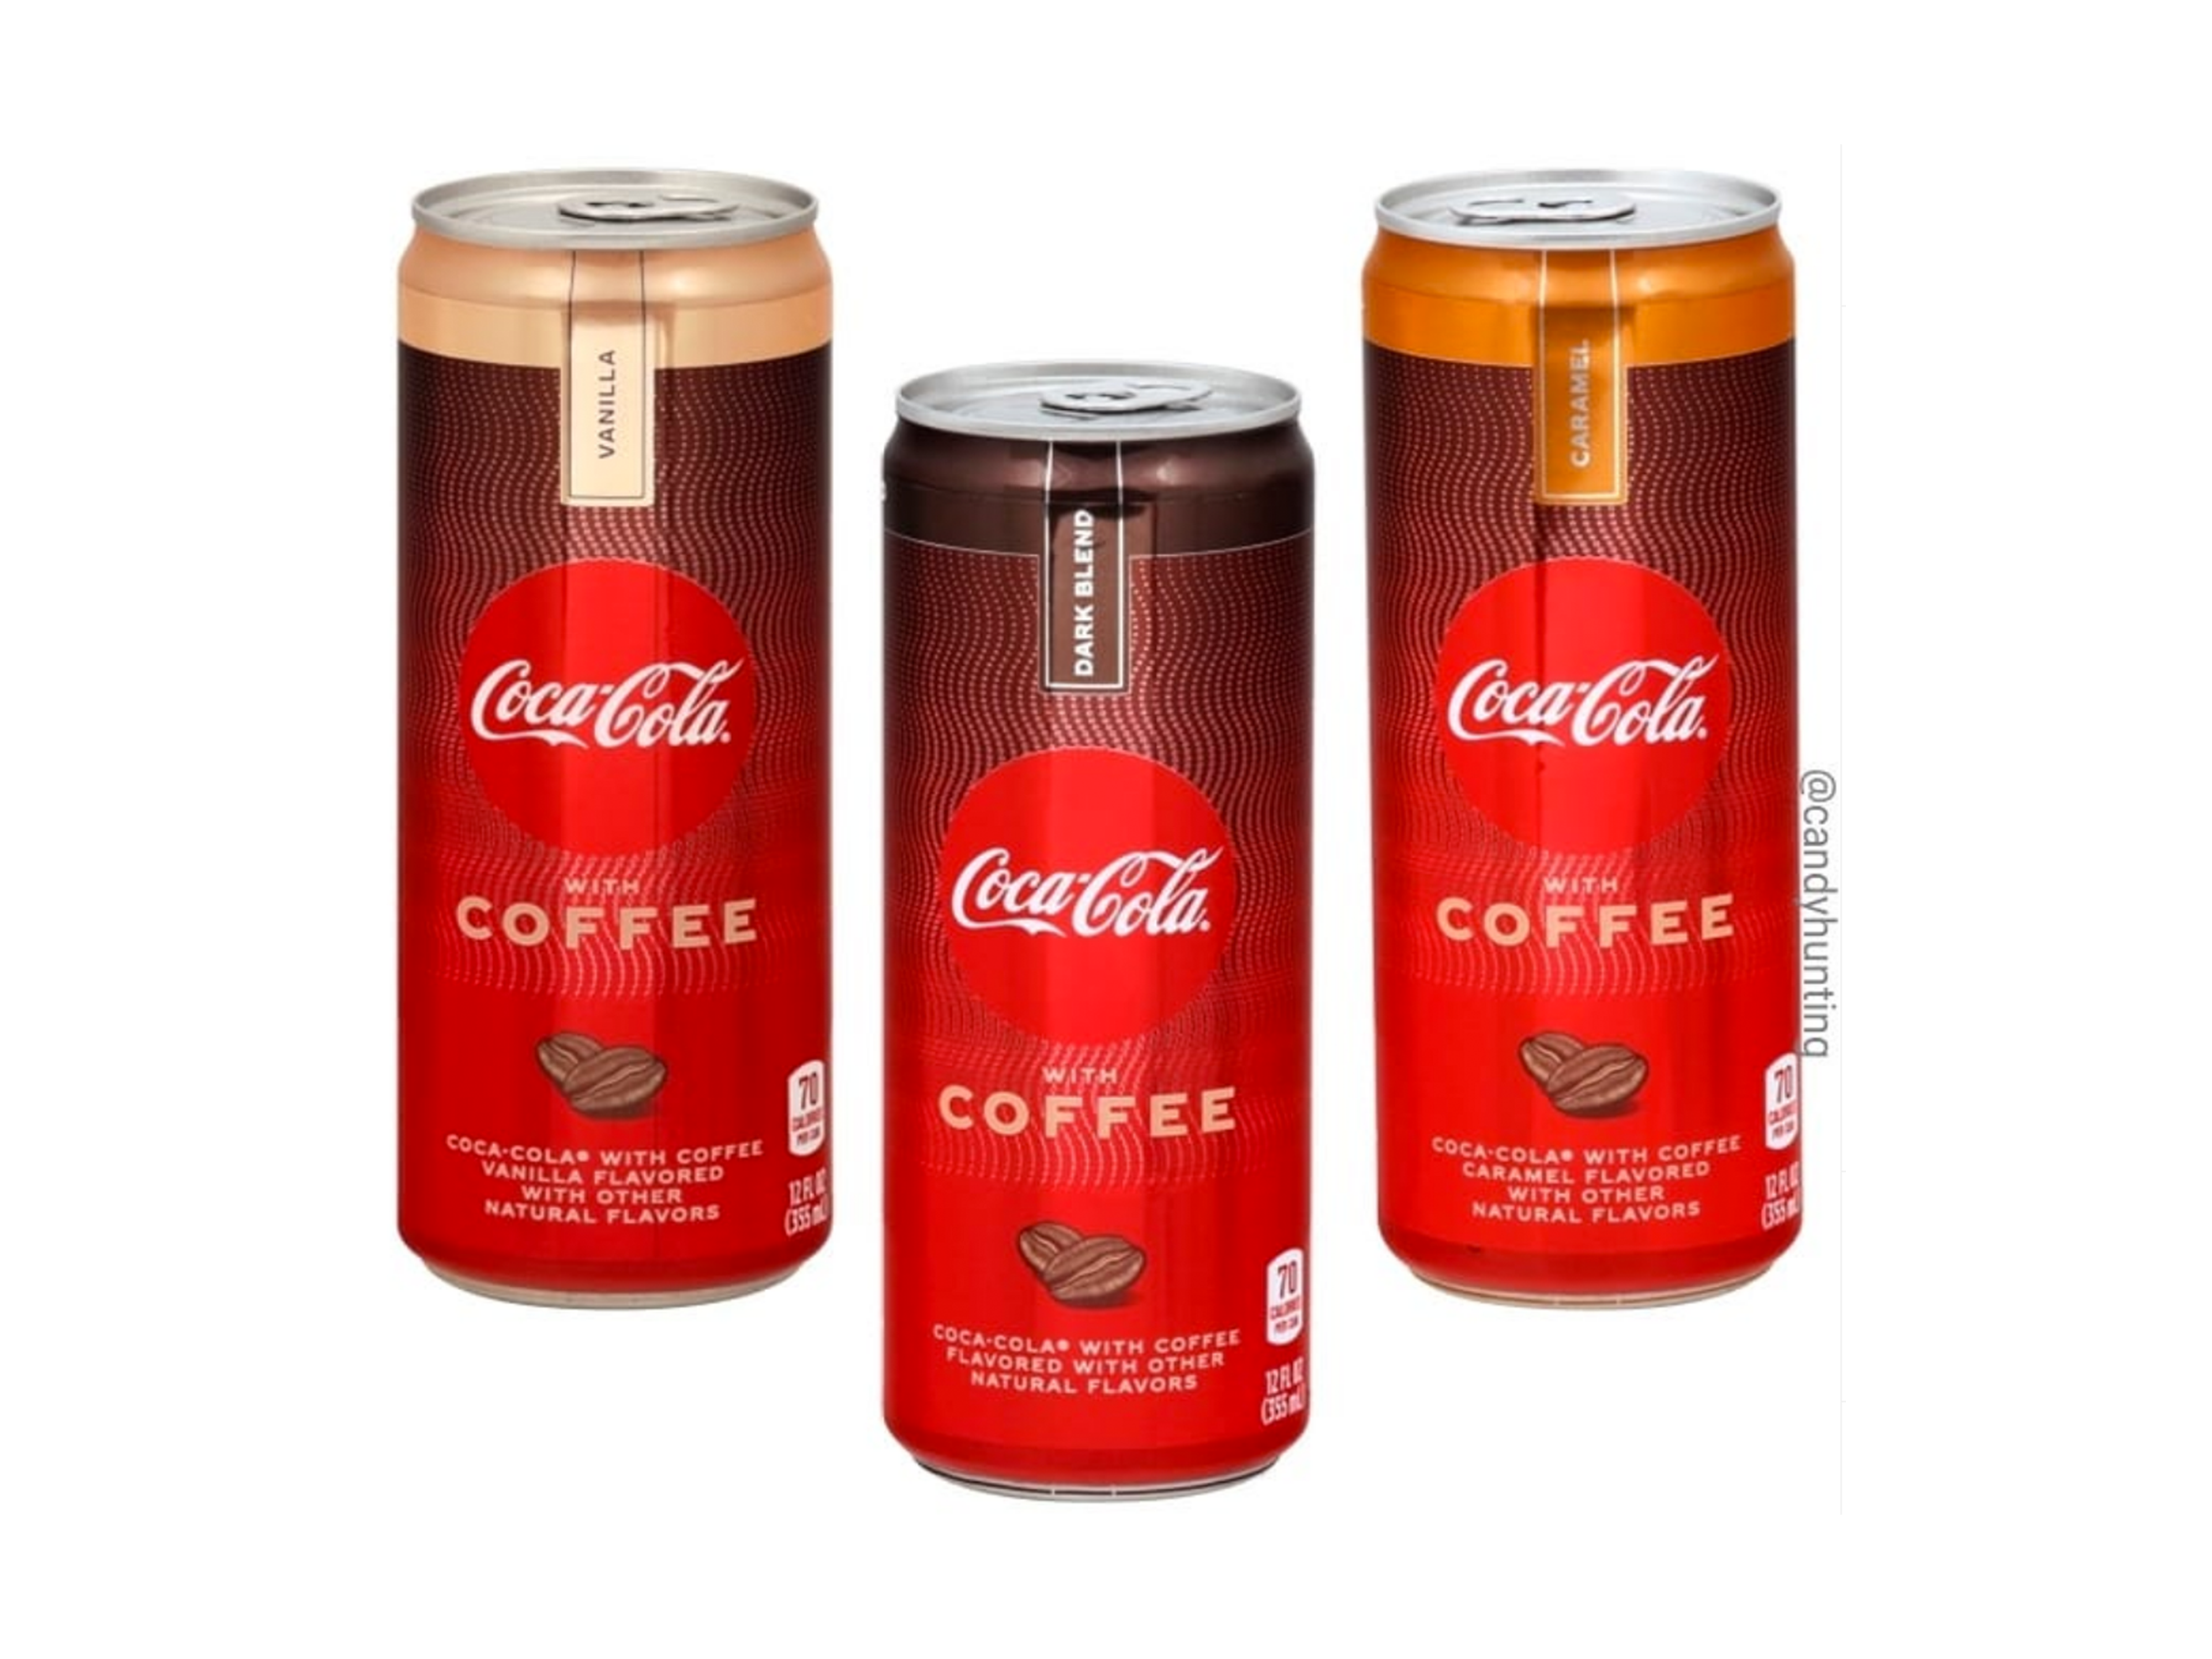 Coffee-Flavored Coke Is the Ultimate Caffeine Rush